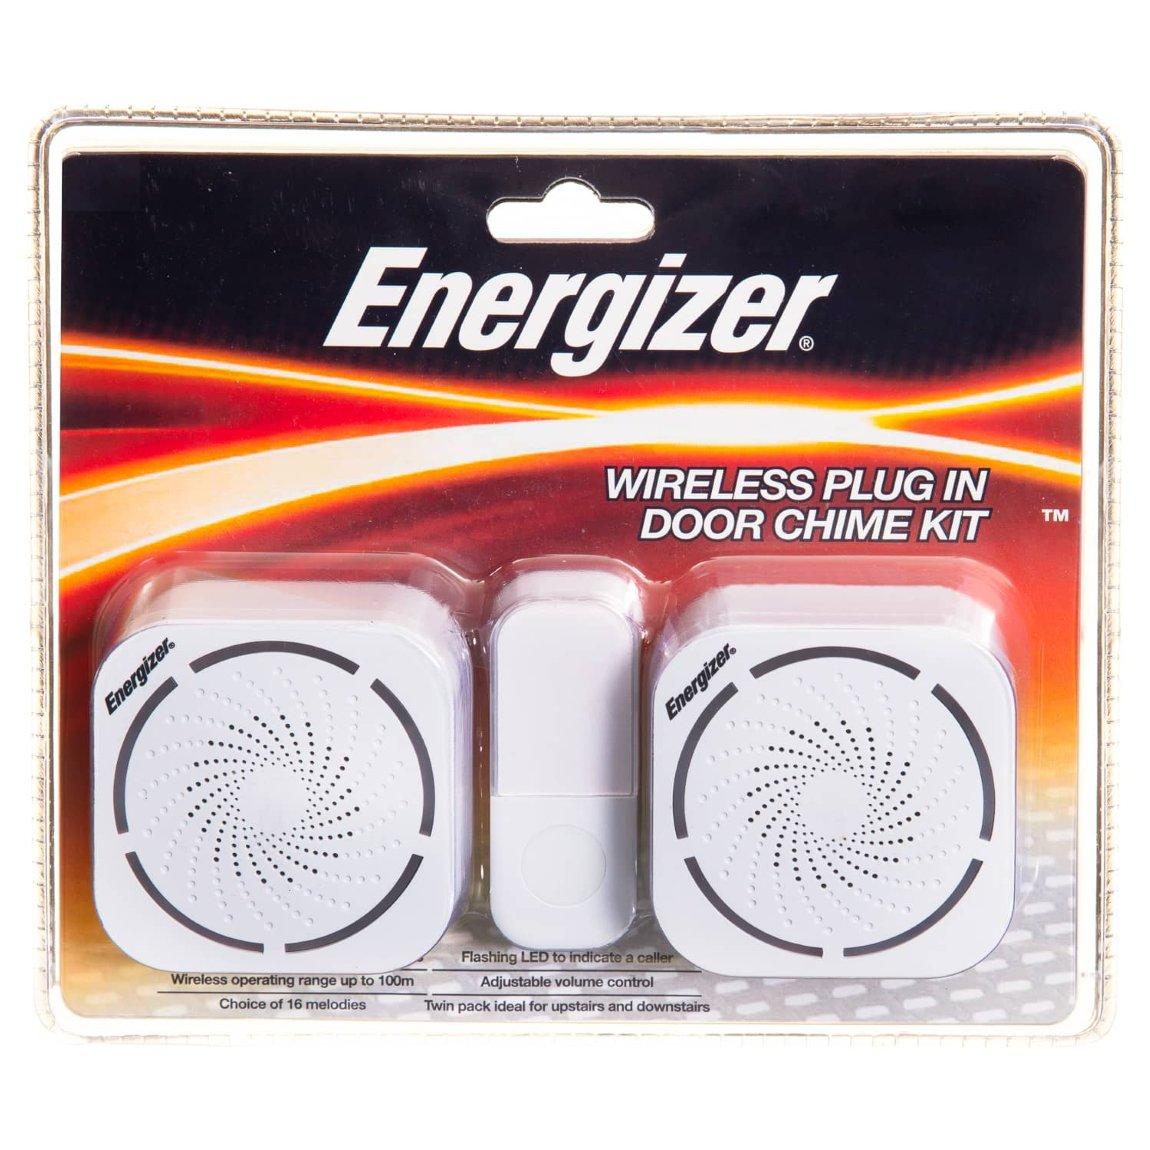 Energizer Wireless Plug In Door Chime Kit 2pk